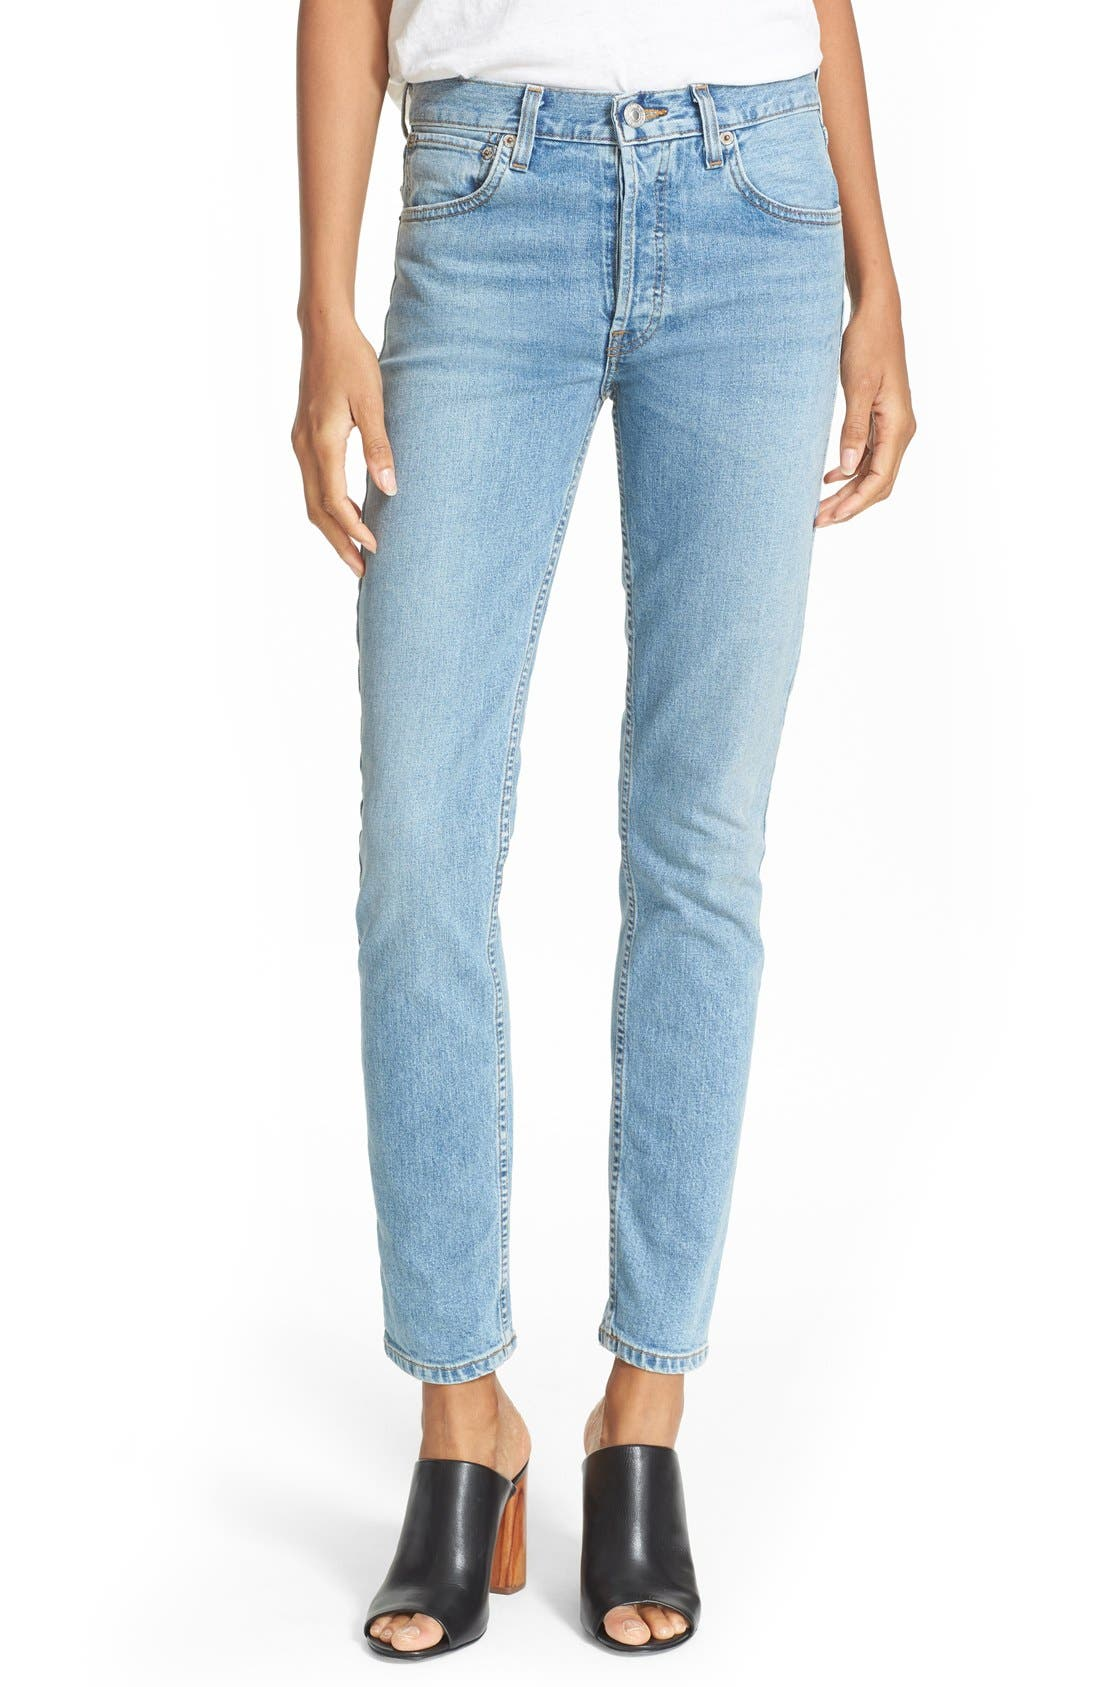 RE/DONE Originals High Waist Straight Skinny Stretch Jeans